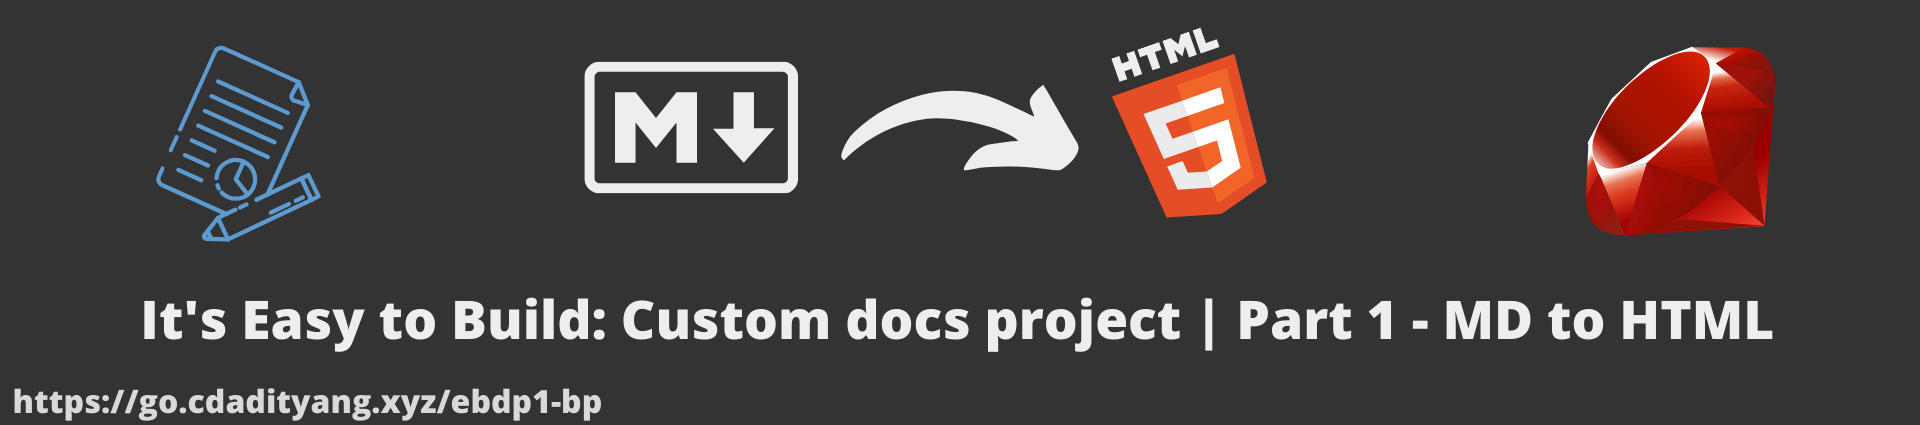 It's Easy to Build: Custom docs project | Part 1 - MD to HTML